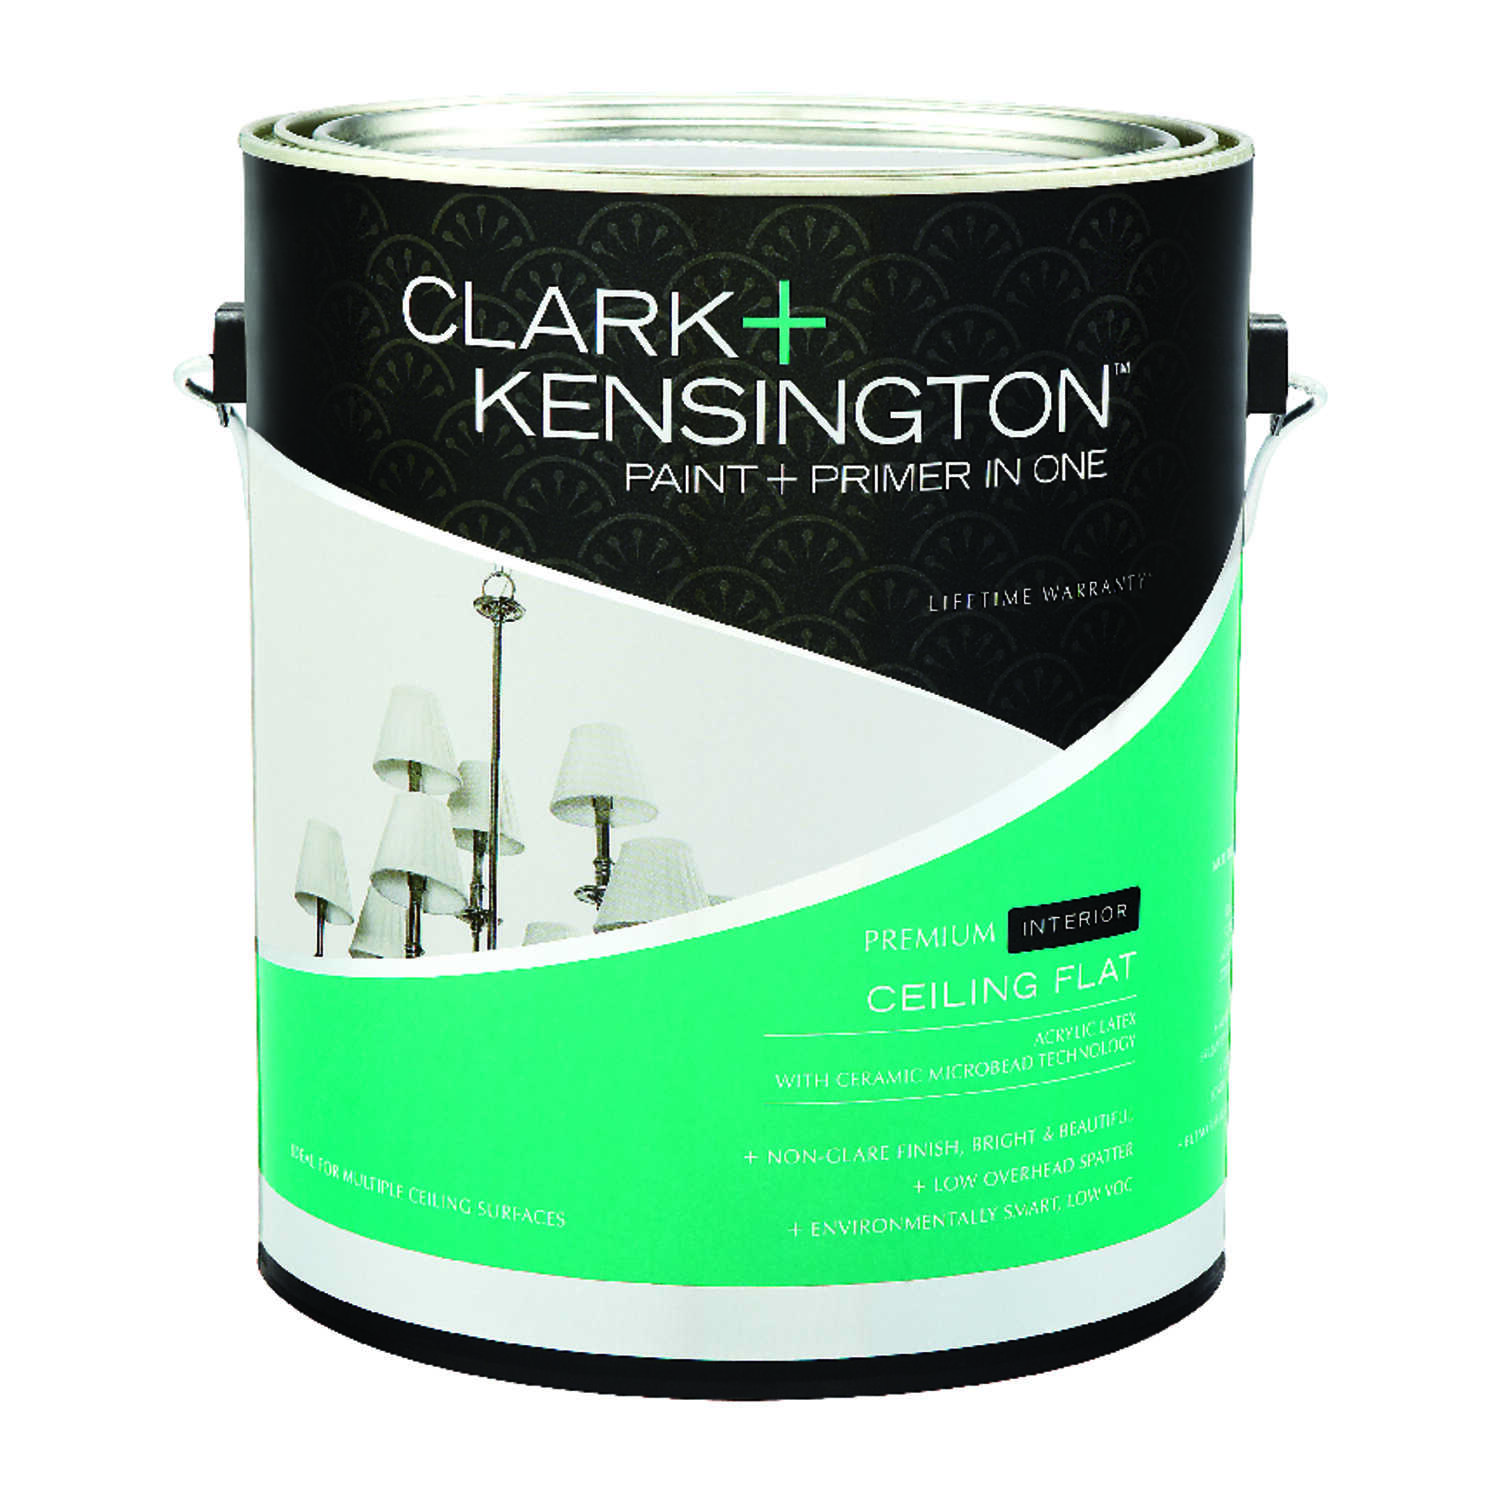 Clark+Kensington  Ace  White  Acrylic Latex  Ceiling Paint and Primer in One  Flat  1 gal.